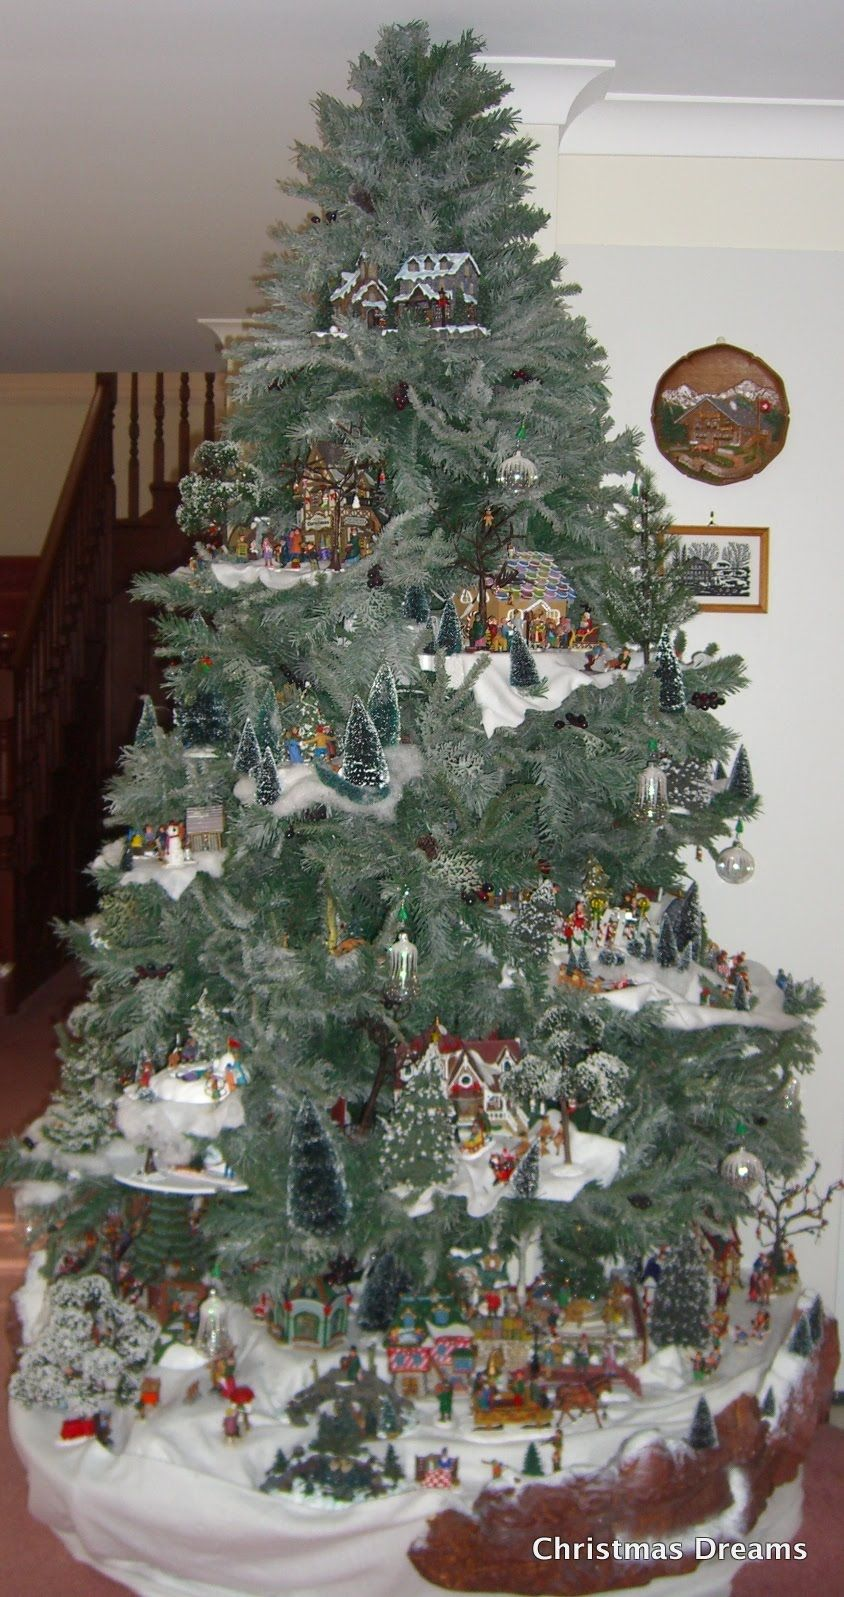 Lemax Christmas Tree Display #2: A Lemax Village d